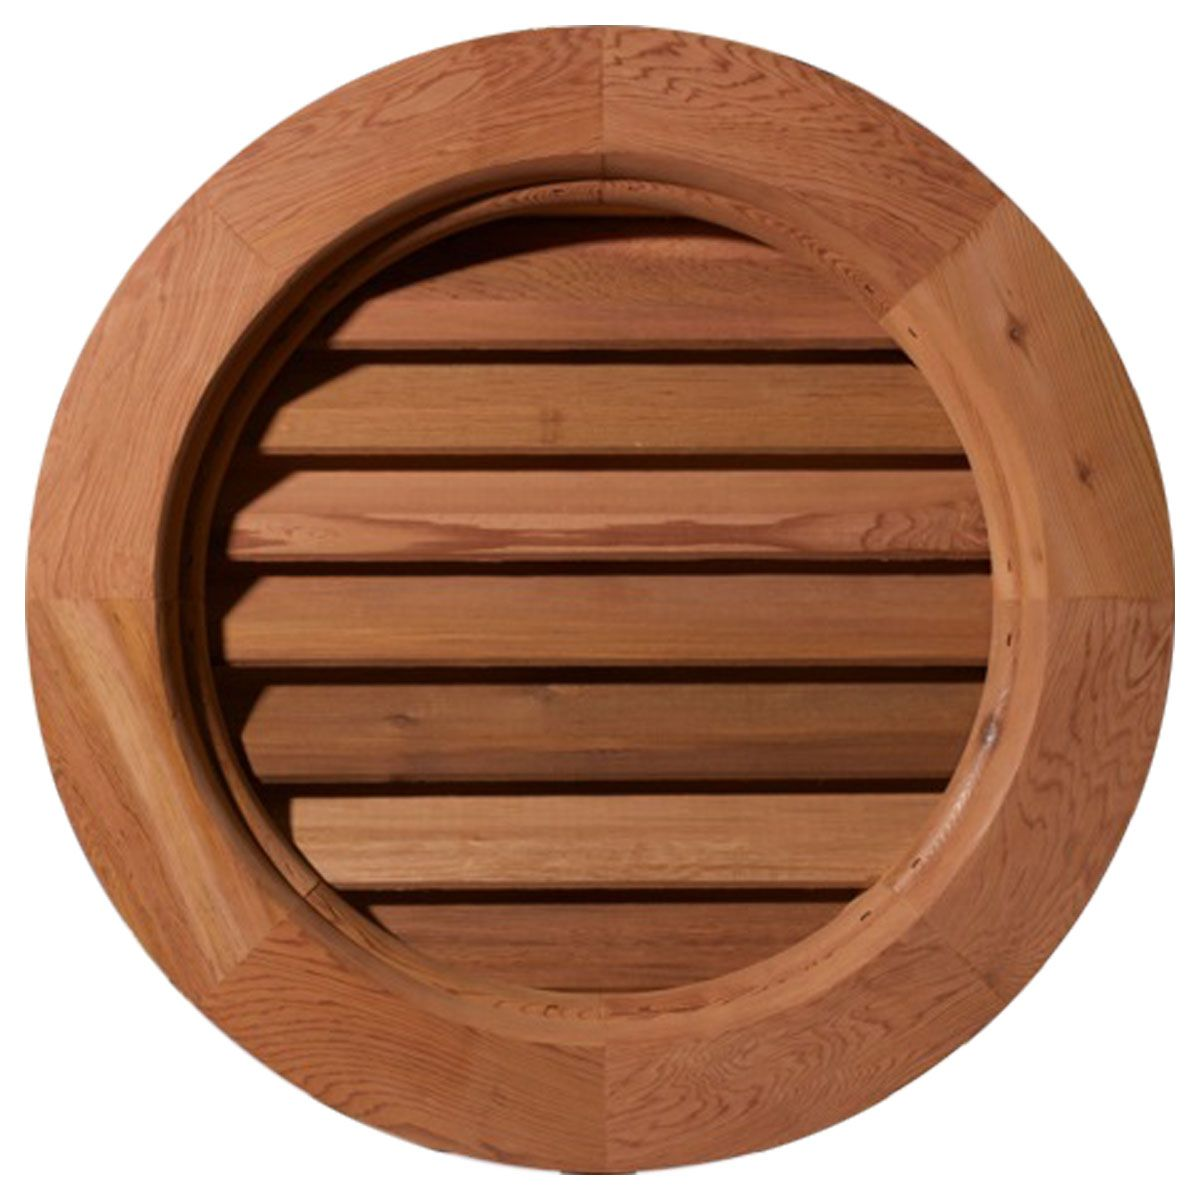 Round wood gable vent woods house accessories and men cave for Window design round